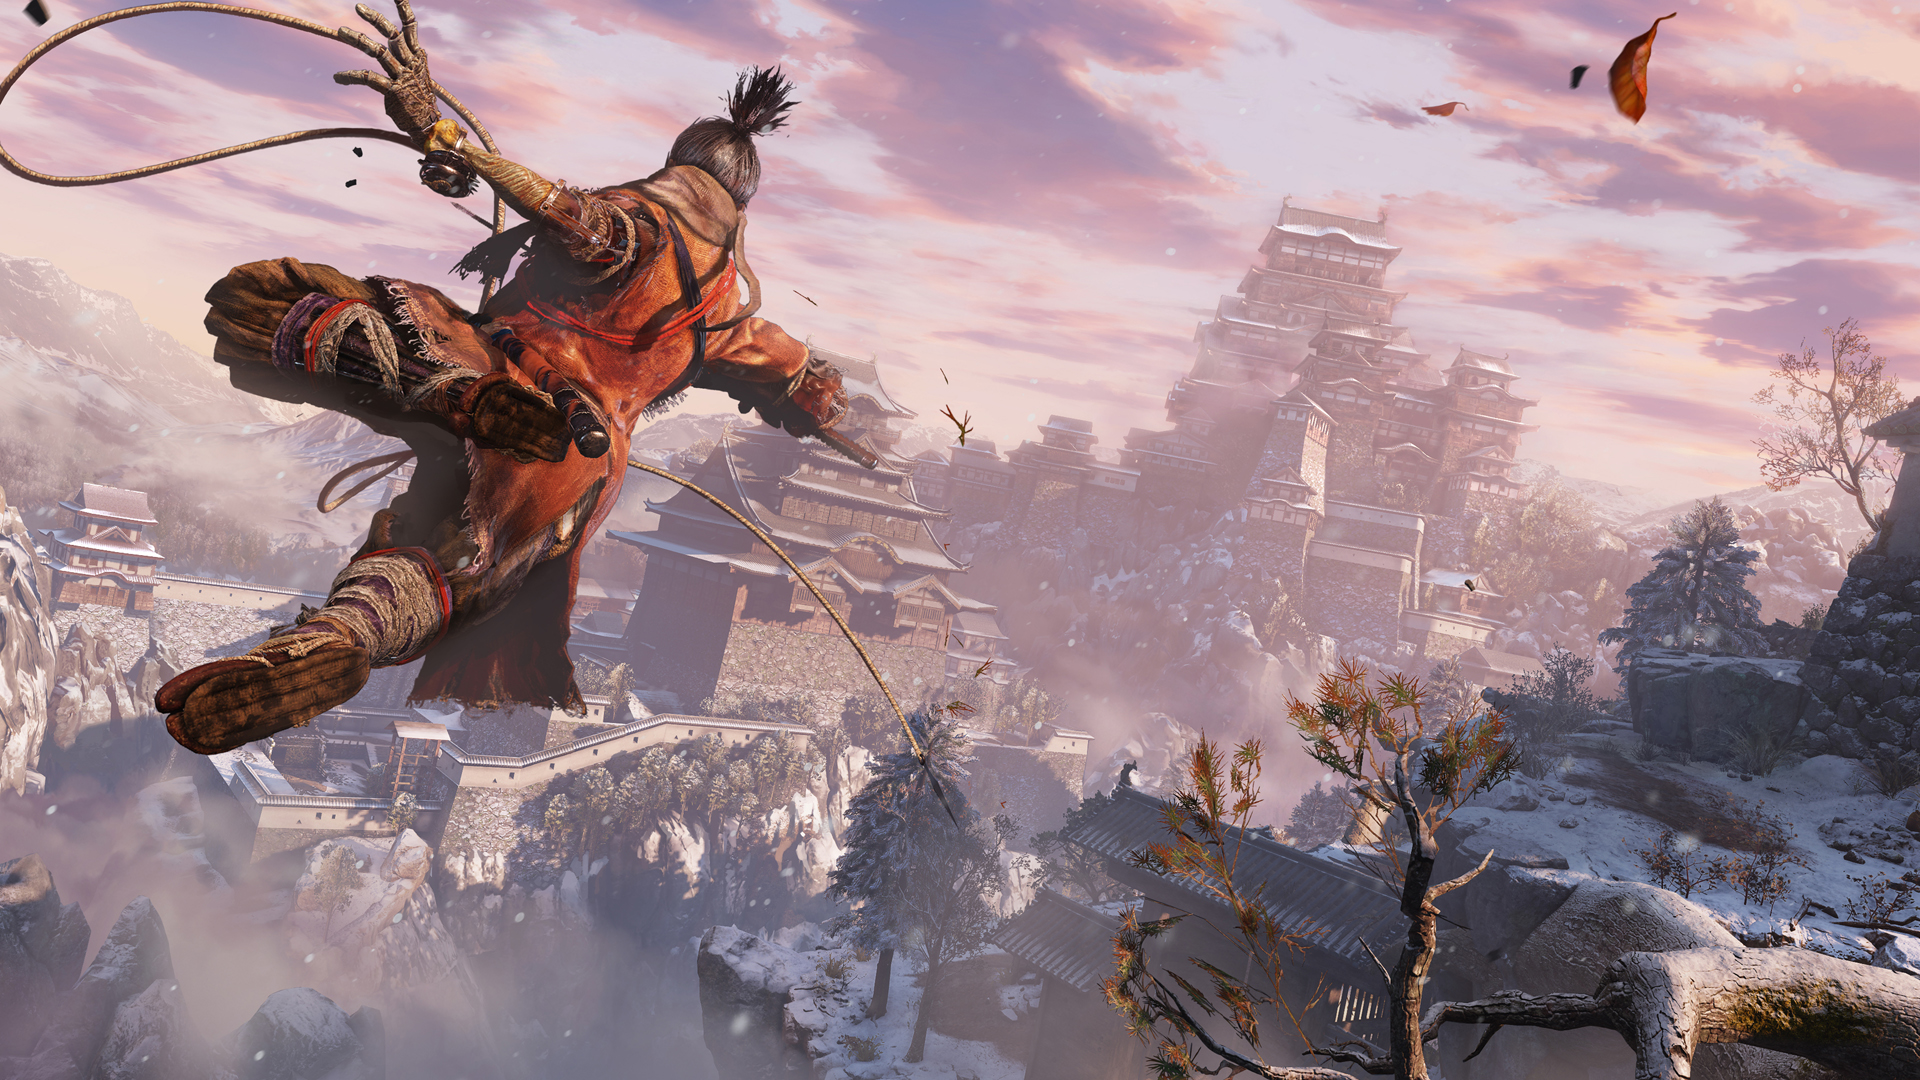 Sekiro Shadows Die Twice E3 2018 Hd Games 4k Wallpapers Images